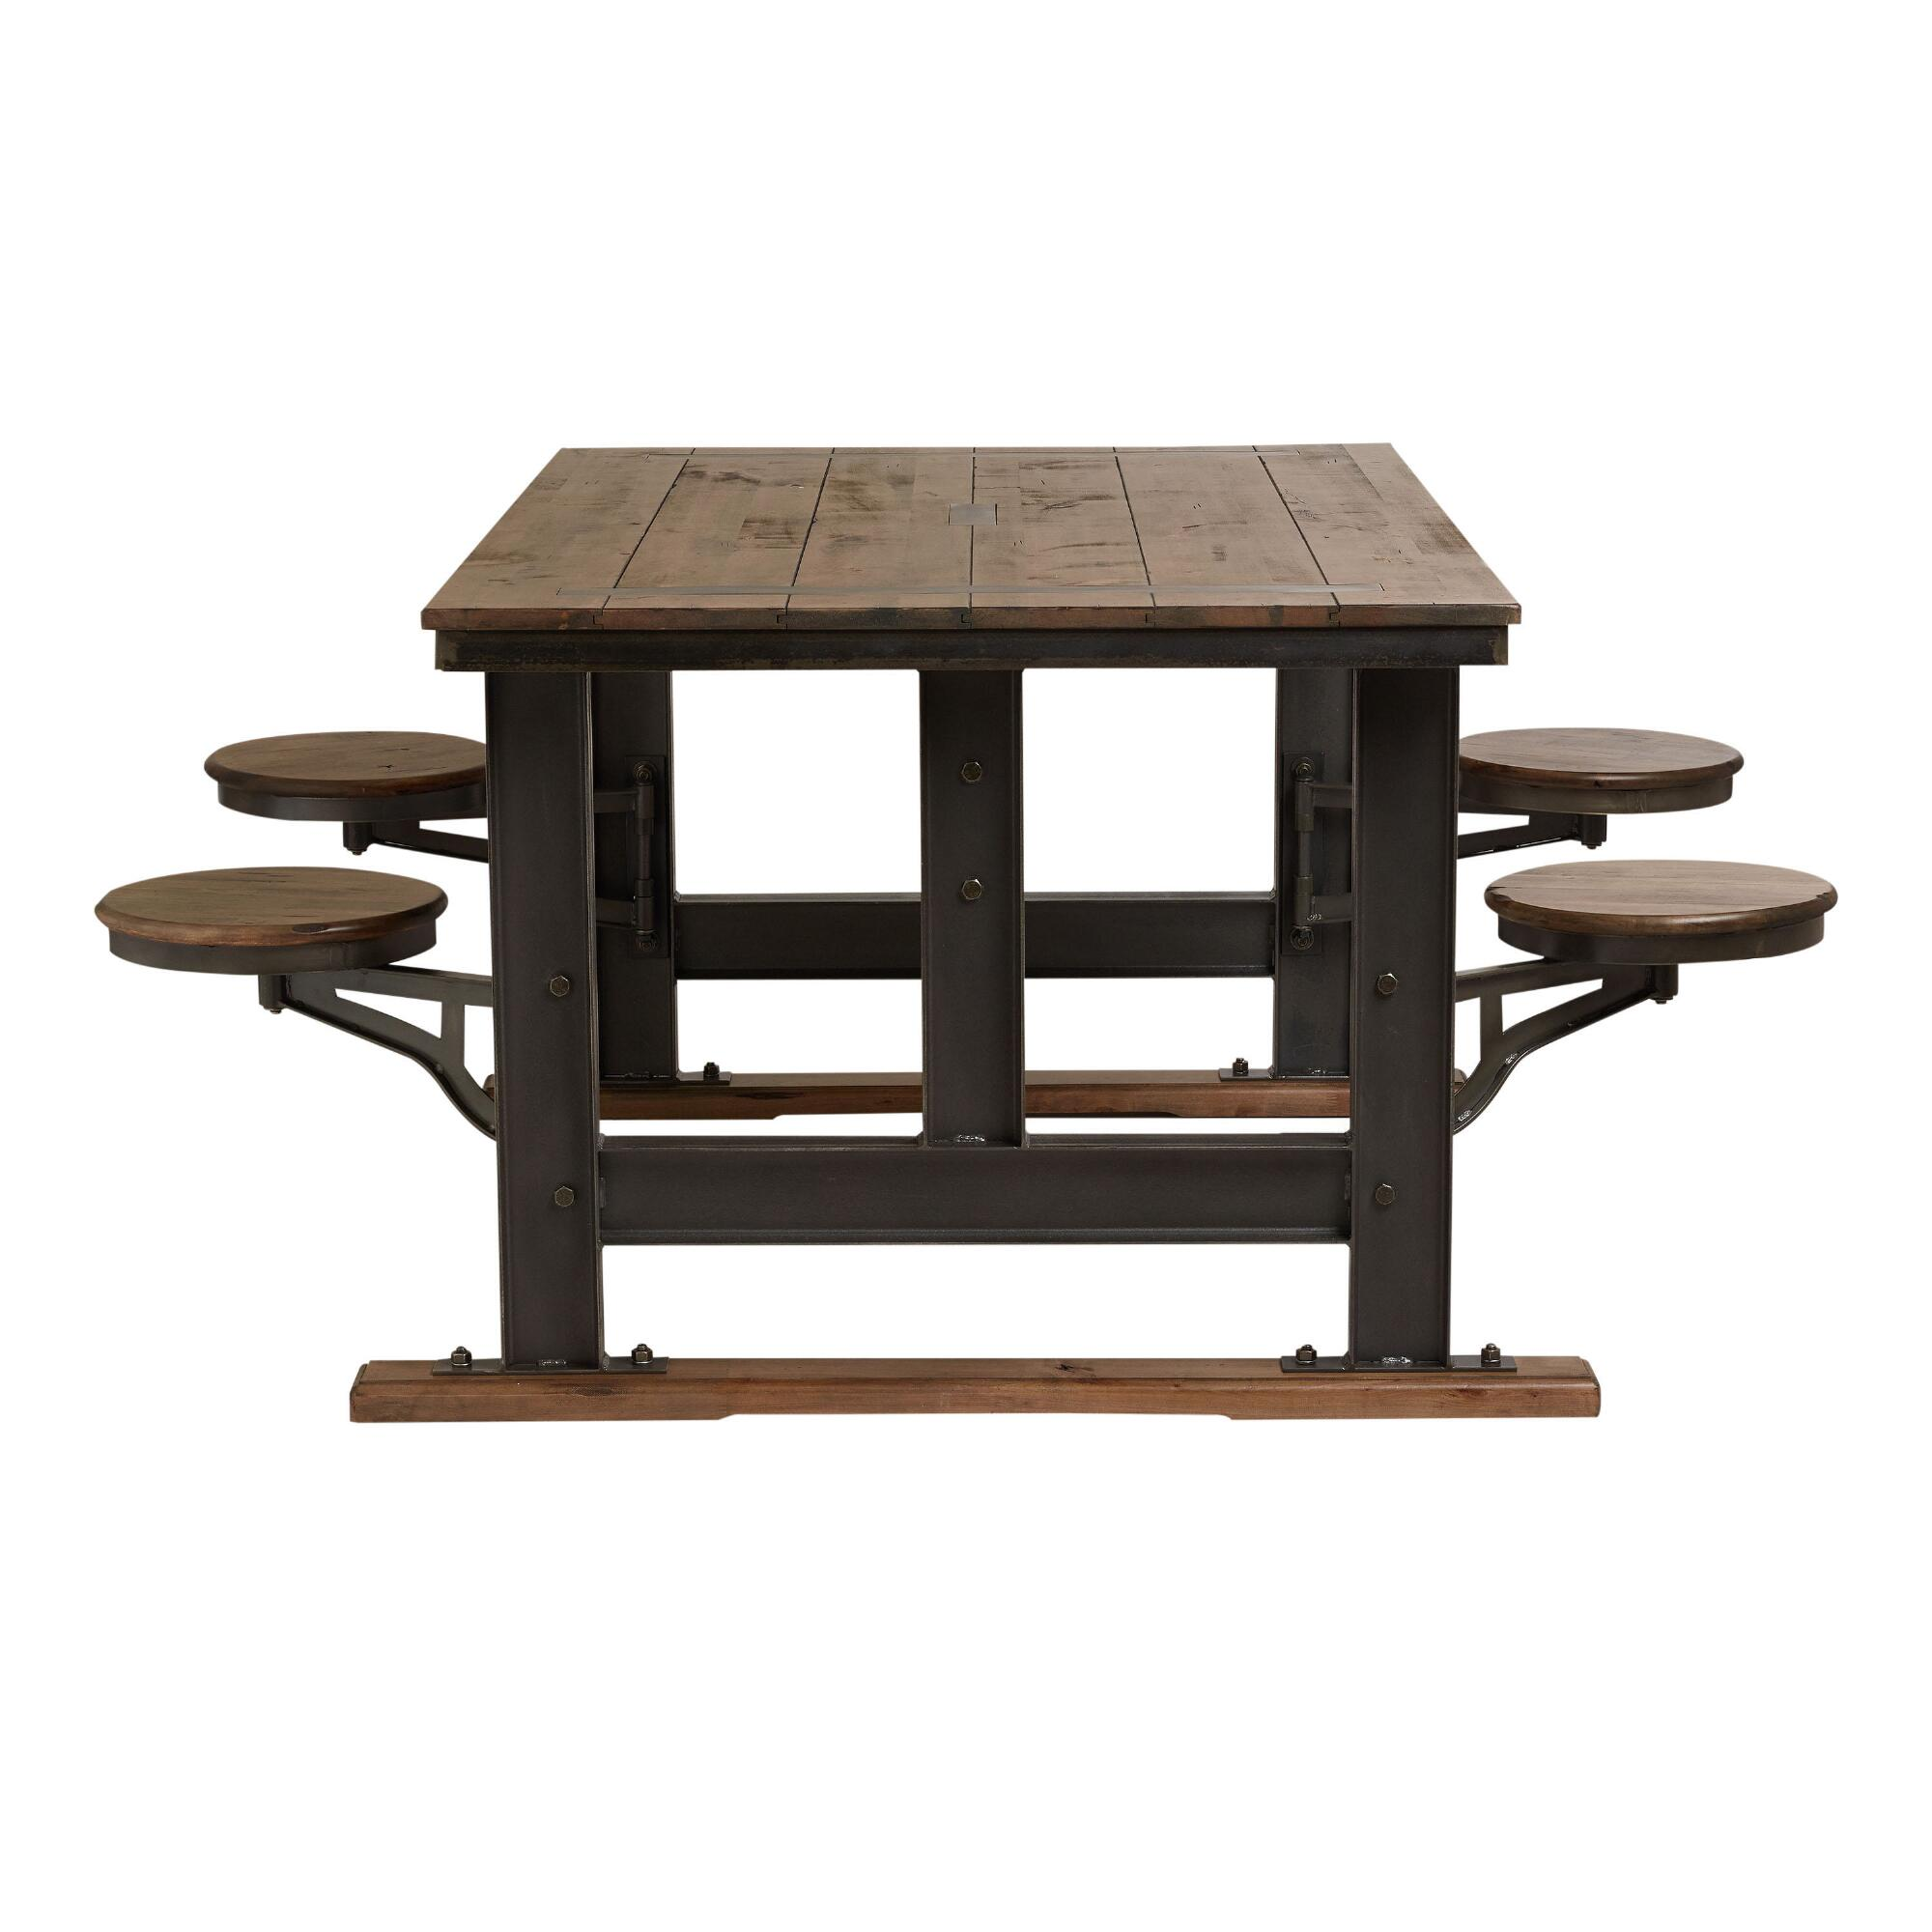 Galvin Cafeteria Table World Market - Standard cafeteria table dimensions